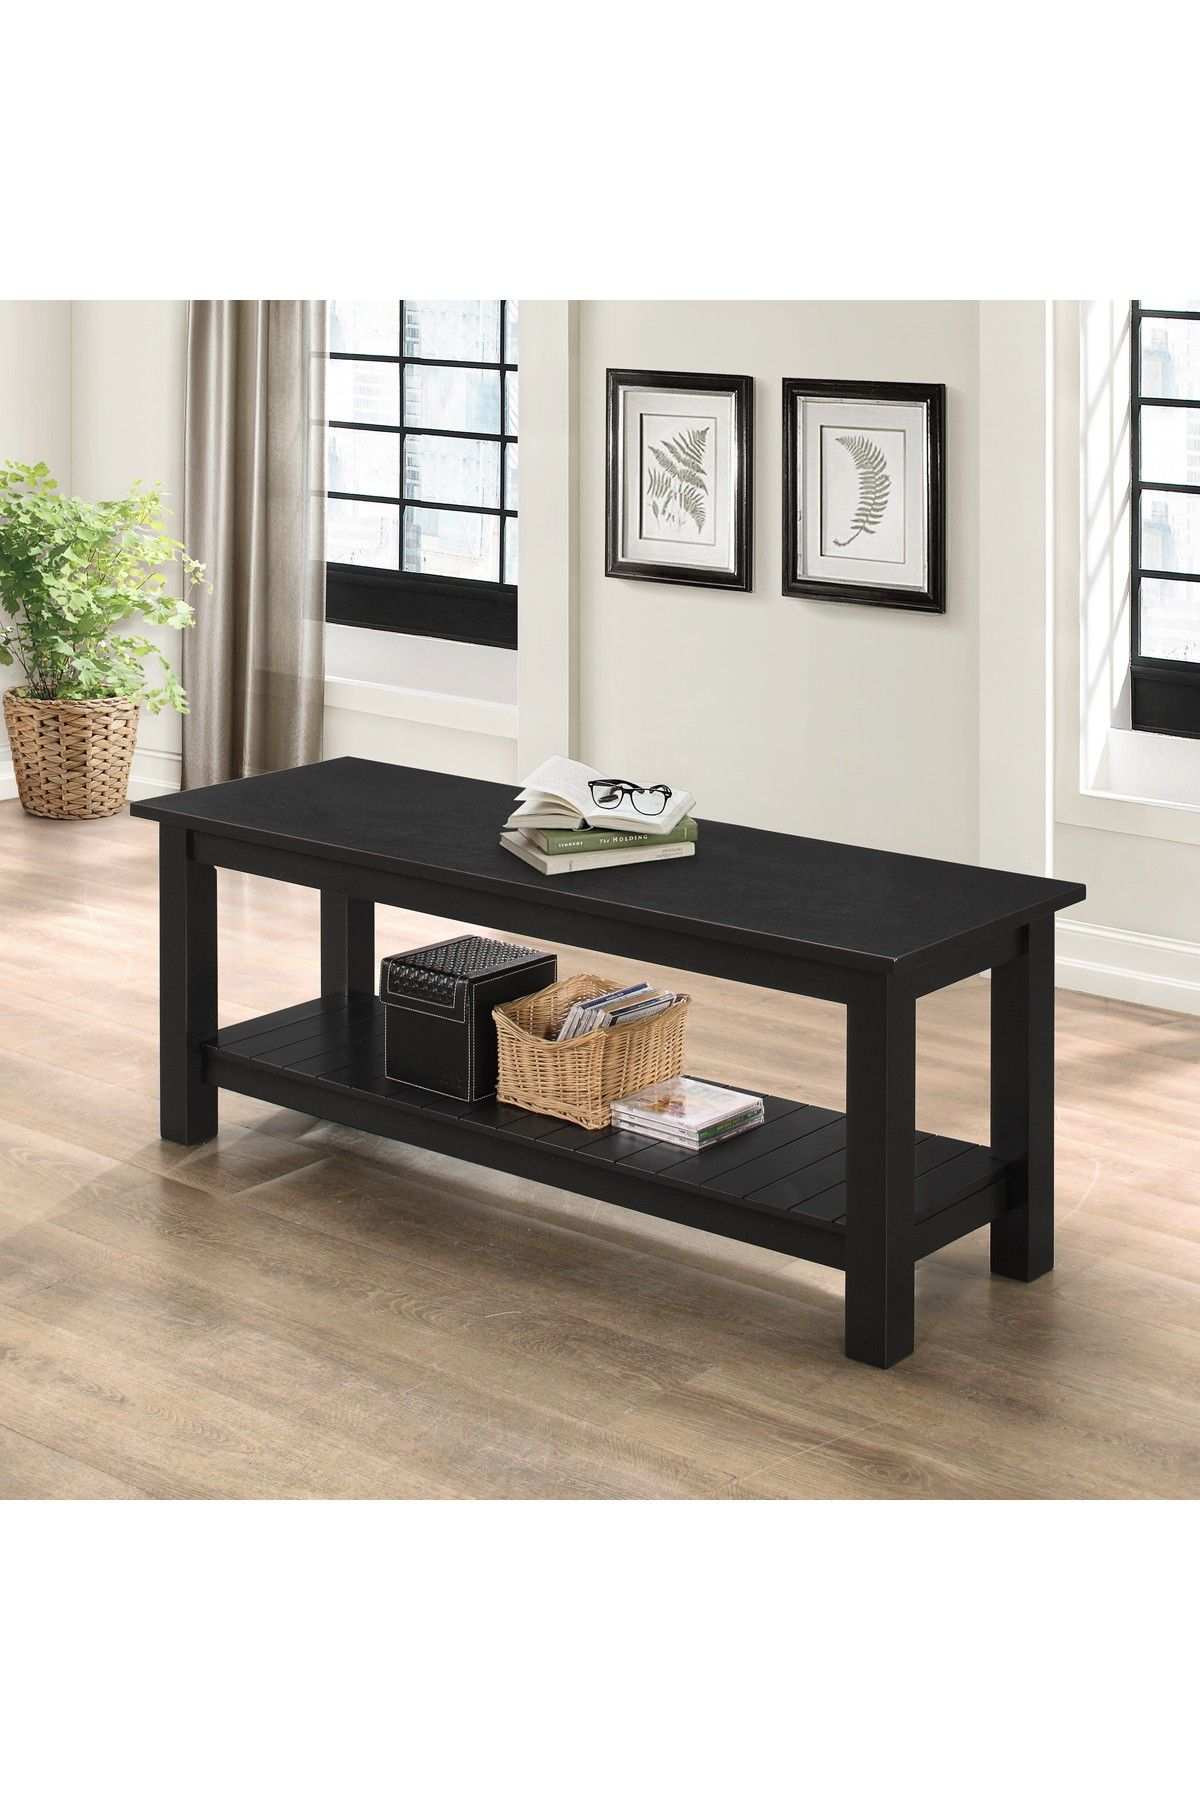 Walker Edison Furniture Company 50'' Country Style Black